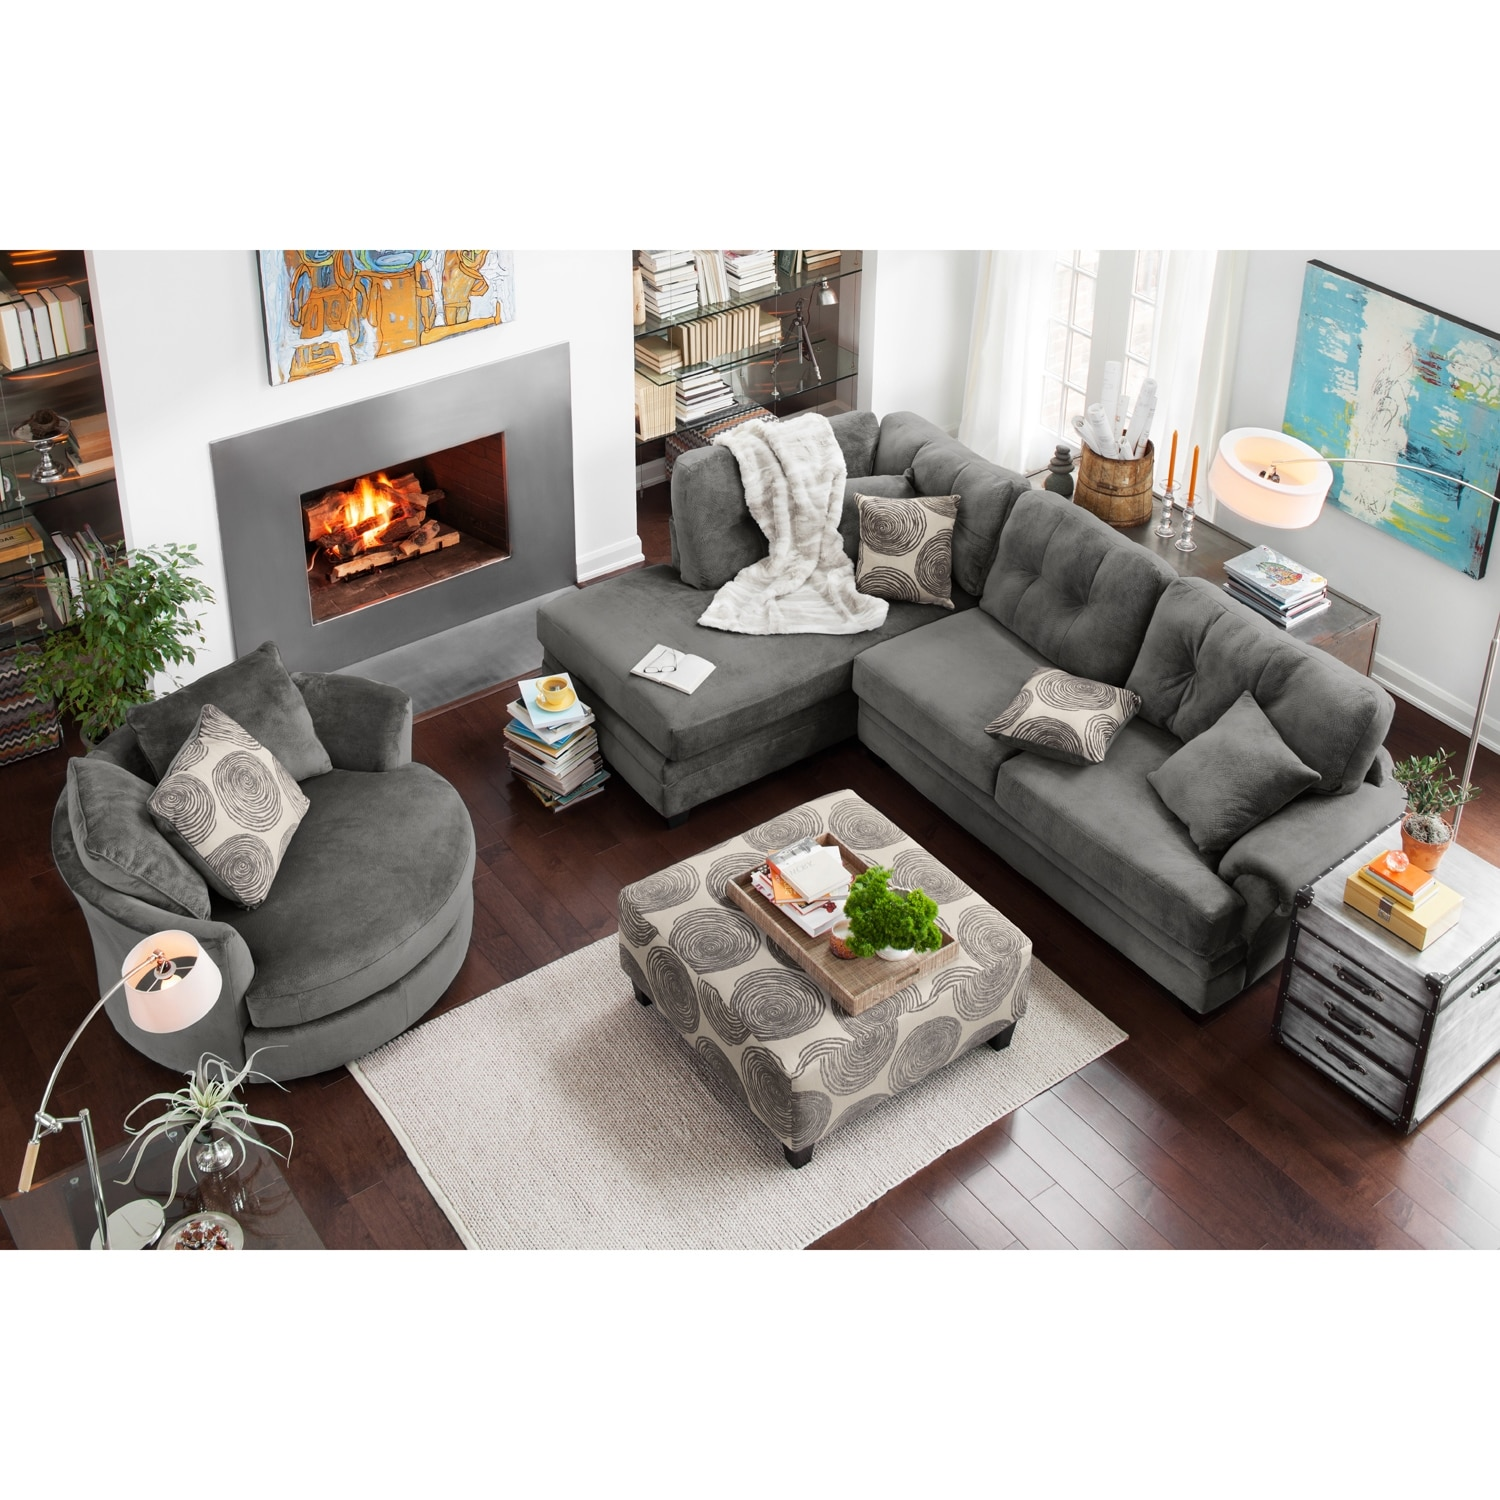 value city furniture marco chaise sofa where can i buy a bed mattress cordelle 2 piece left facing sectional gray